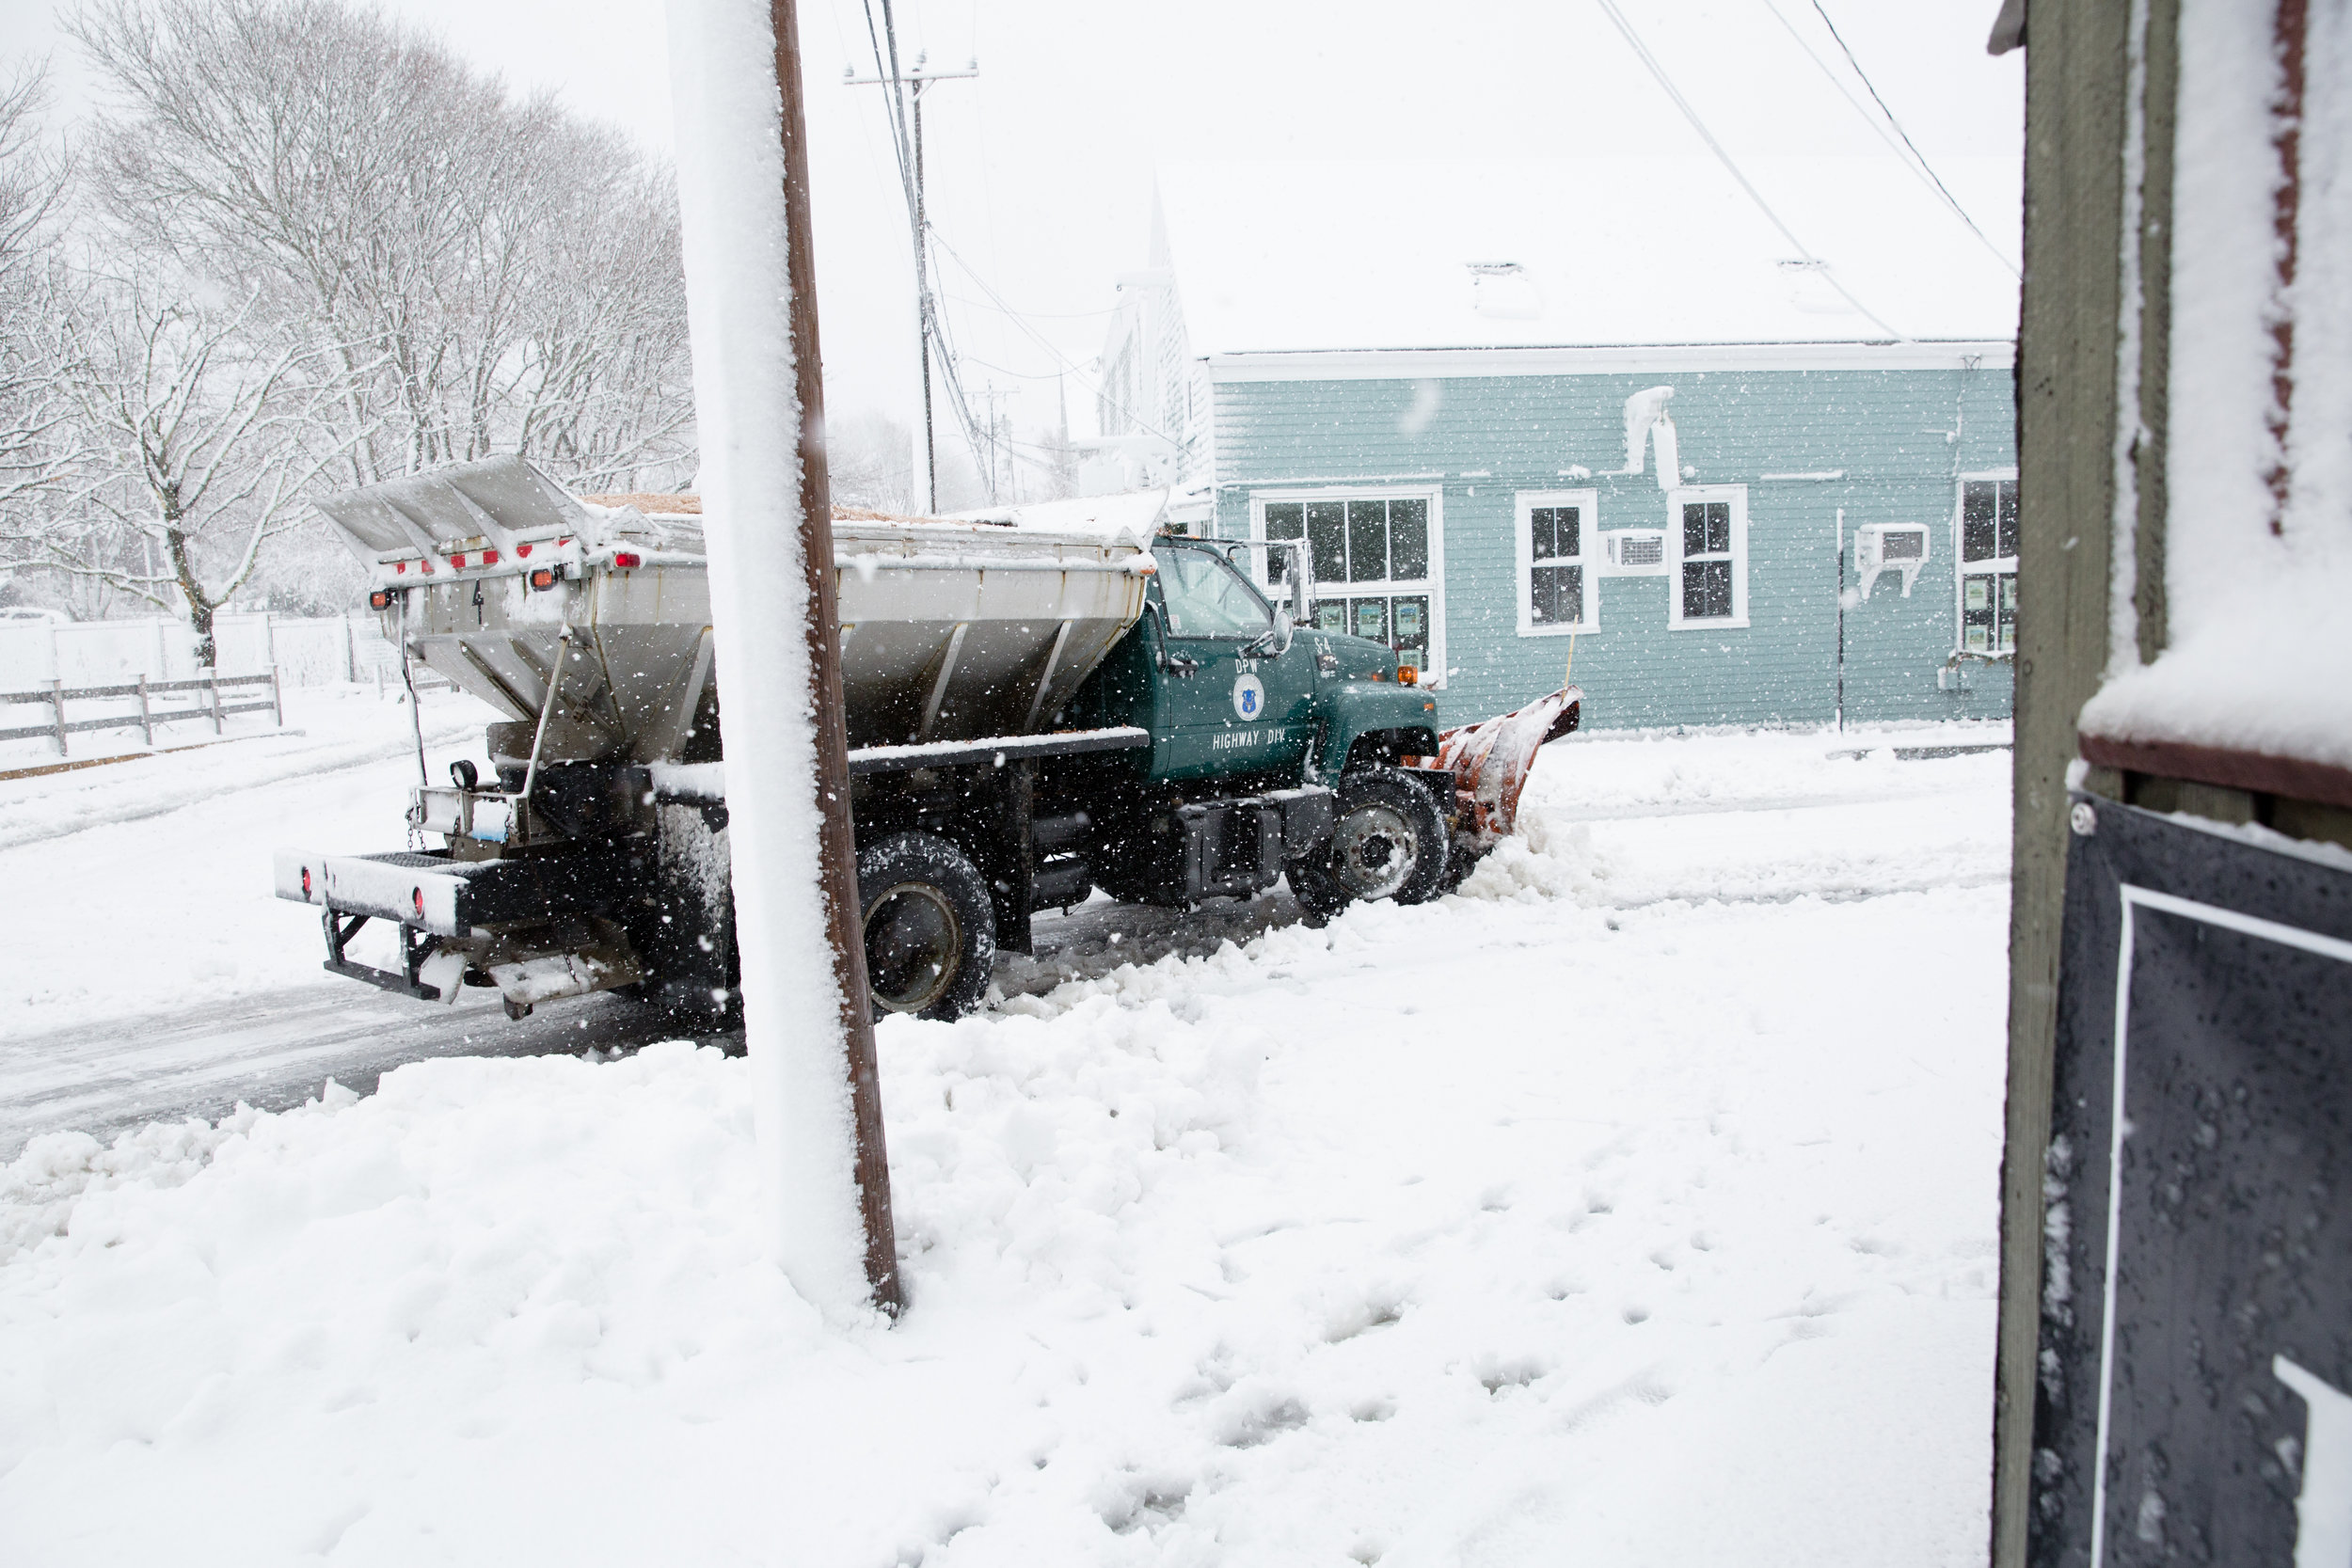 Plows were out day and night. - Padanaram Village